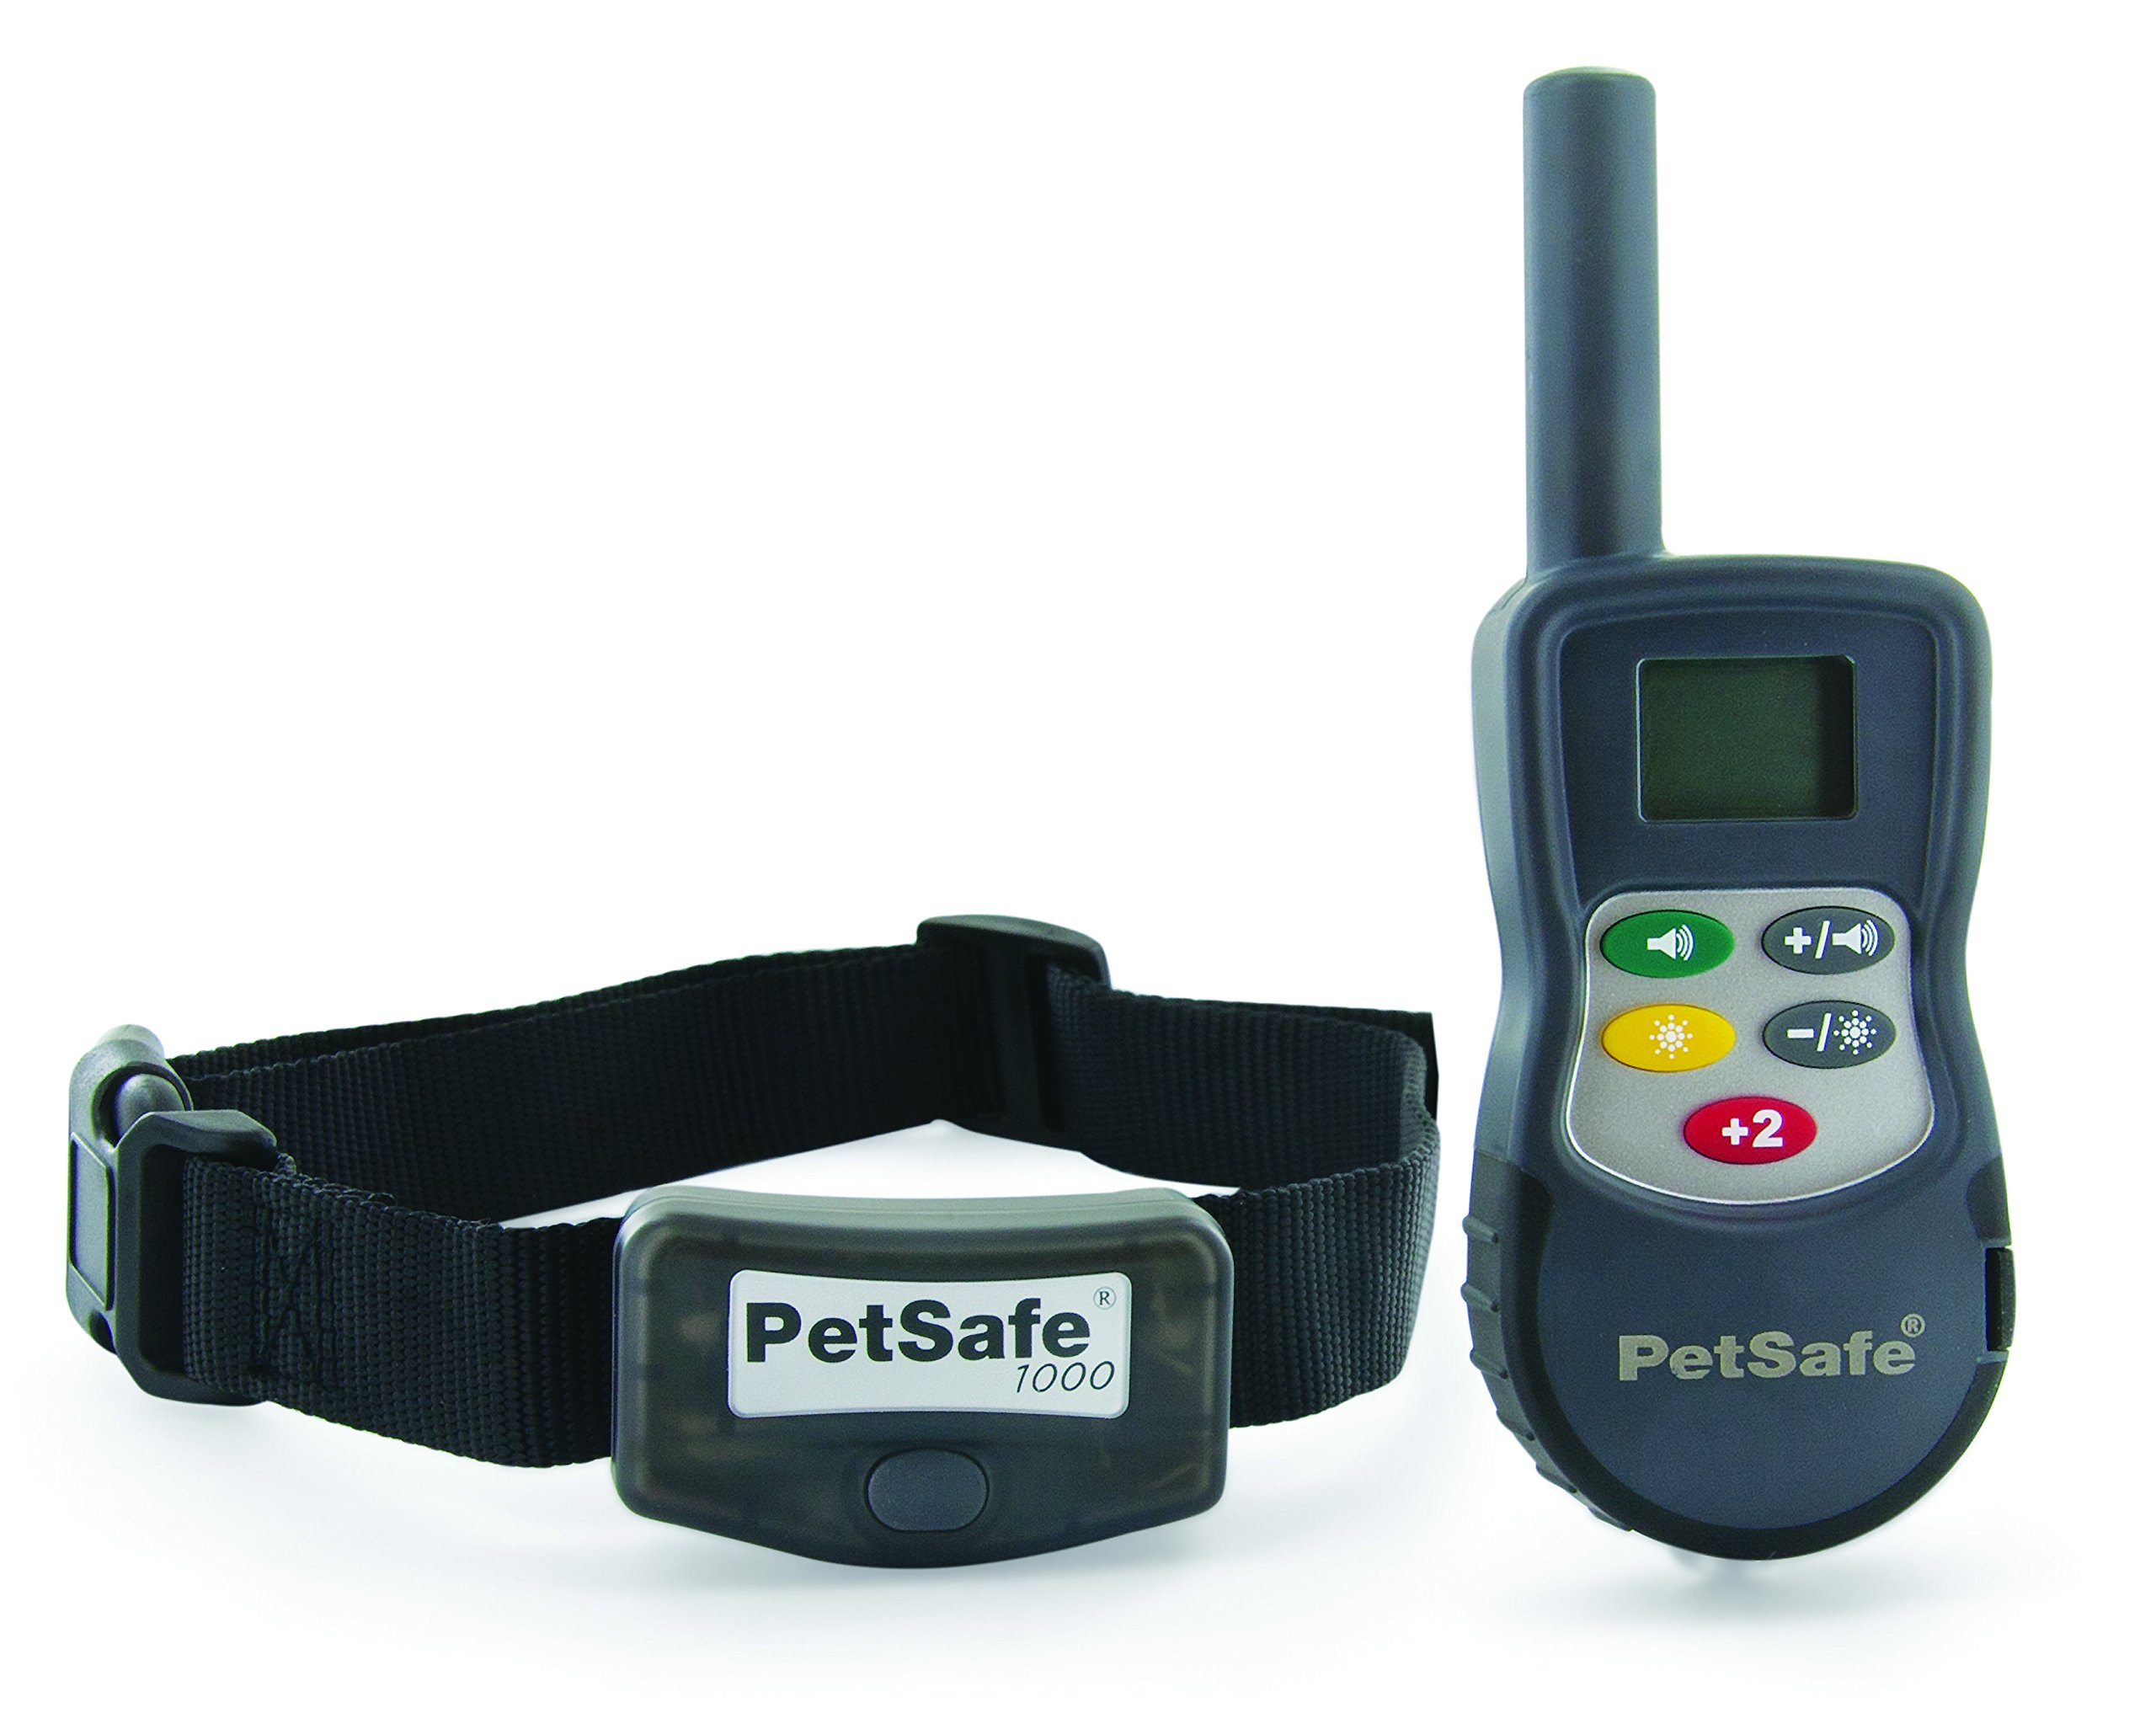 PetSafe Elite Little and Big Dog Remote Trainers, for Small, Medium and Large Dogs, Tone and Shock, Waterproof and Rechargeable by PetSafe